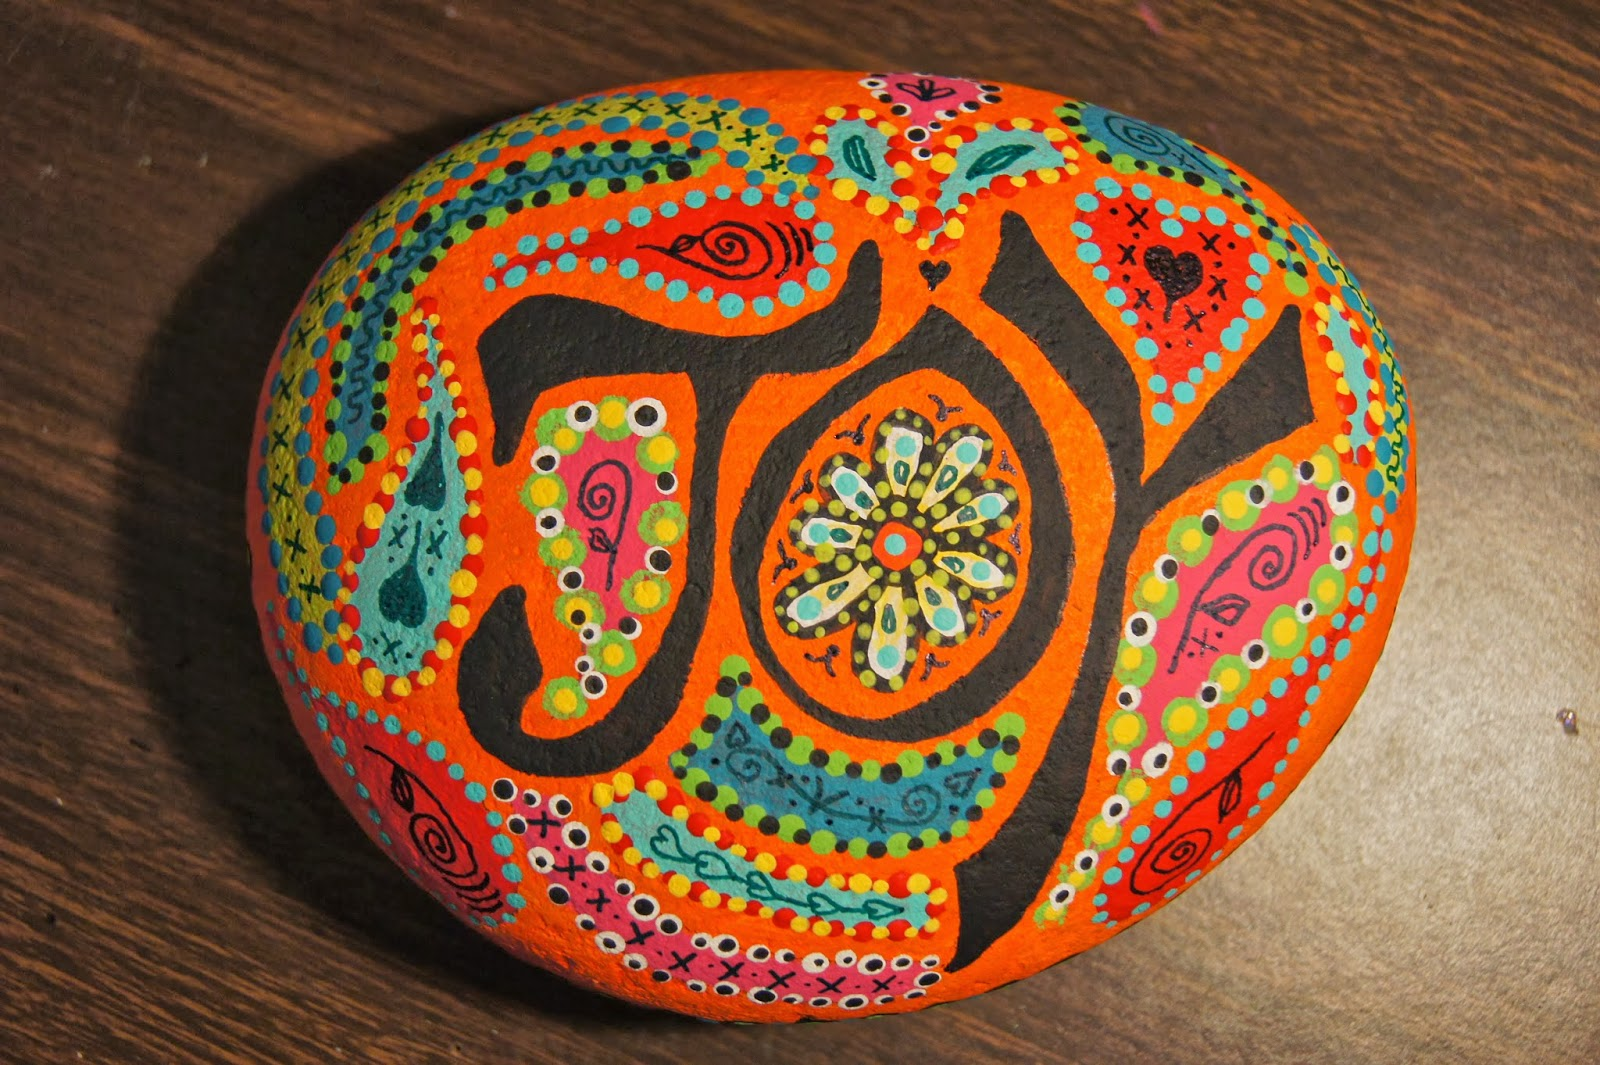 Hive arts crafts painting river rocks - River rock painting ideas ...